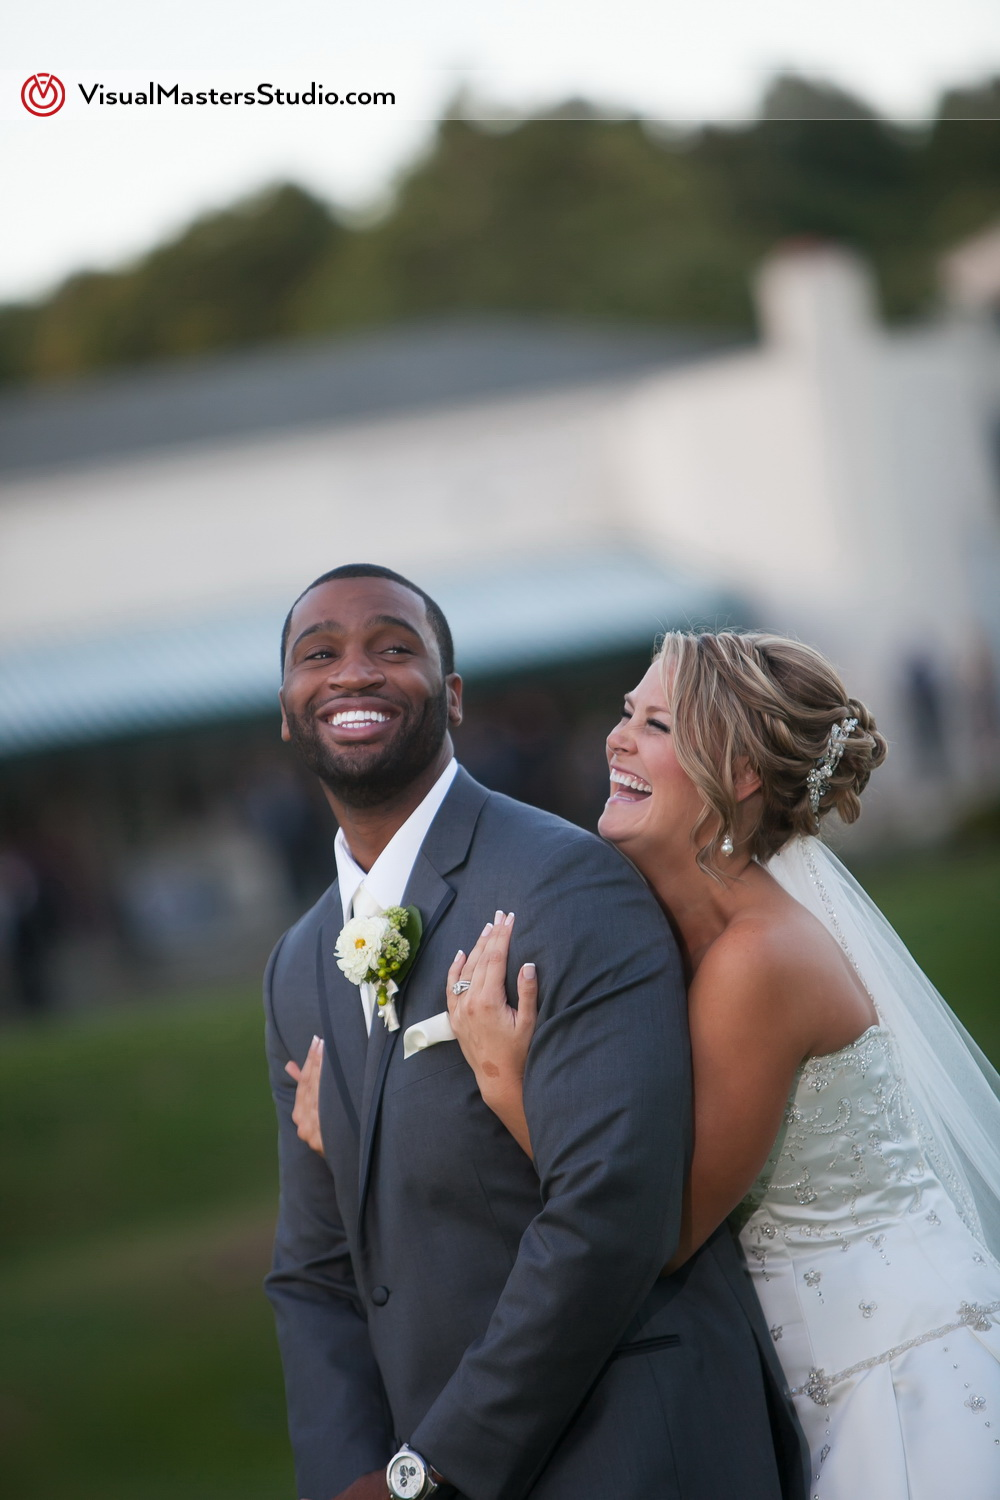 Wedding at Preakness Hills Country Club by Visual Masters